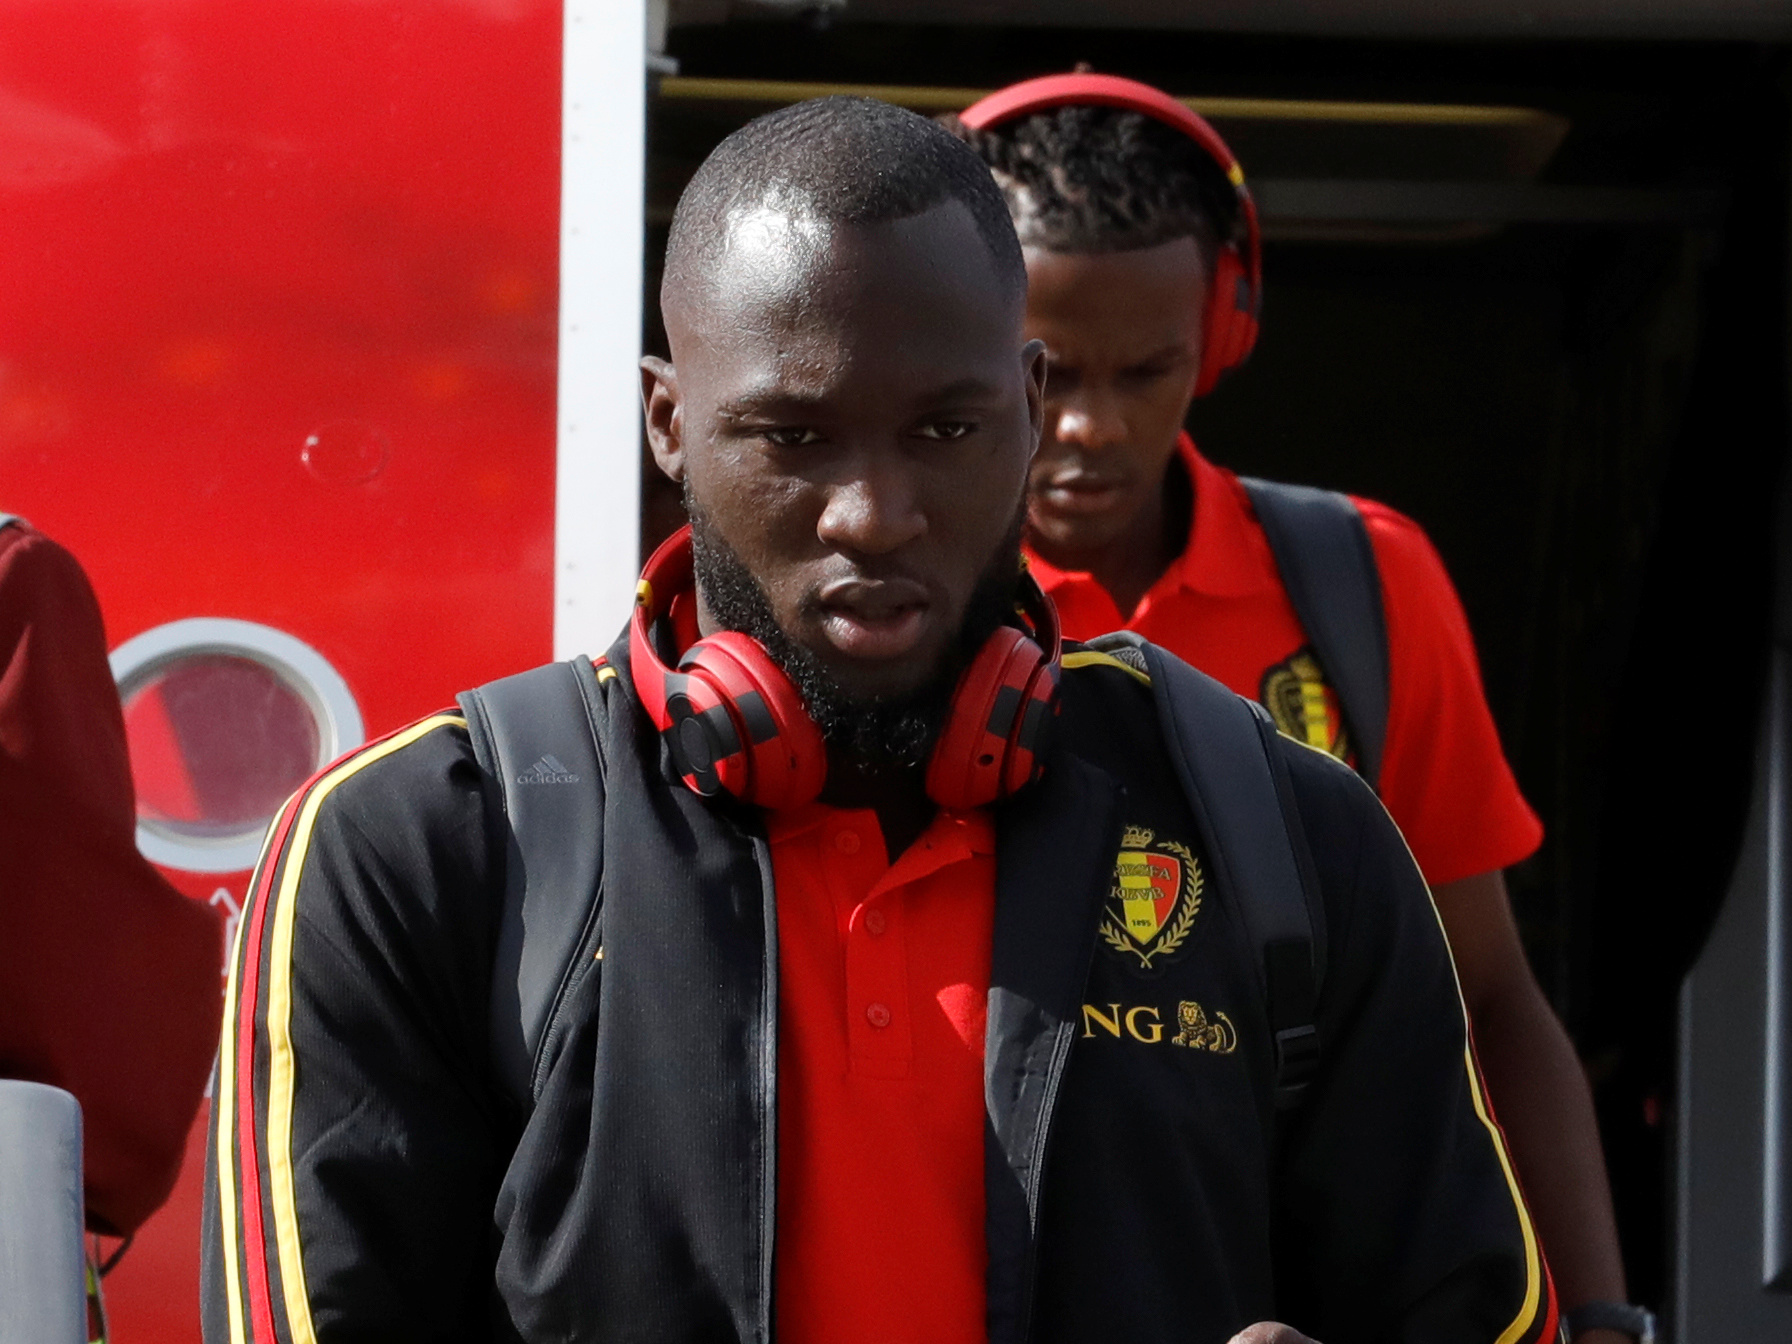 Soccer Football - World Cup - Belgium Arrival - Sheremetyevo International Airport, Moscow, Russia - June 13, 2018 Belgium's Romelu Lukaku during the arrival in Moscow REUTERS/Tatyana Makeyeva - RC19673CC520